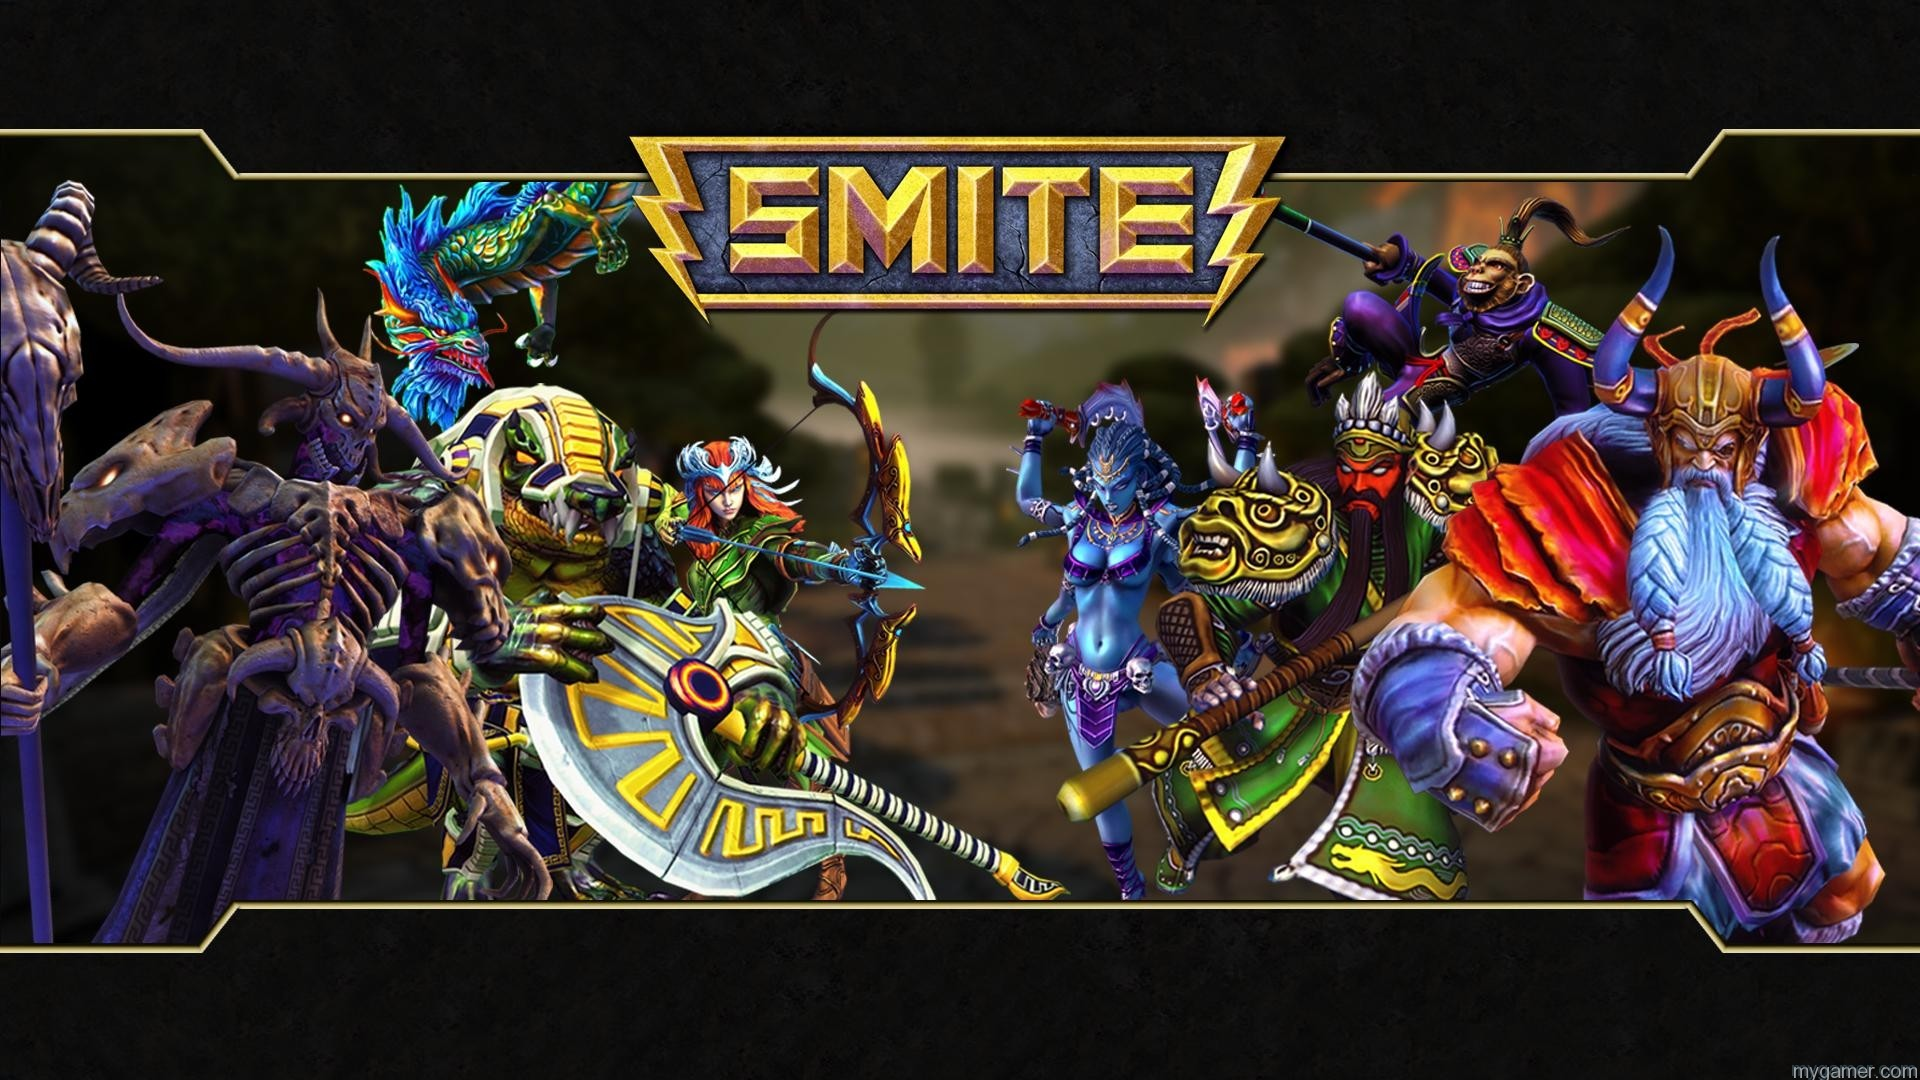 smite SMITE Officially Launches on Xbox One - Beta Data Carries Over SMITE Officially Launches on Xbox One – Beta Data Carries Over smite